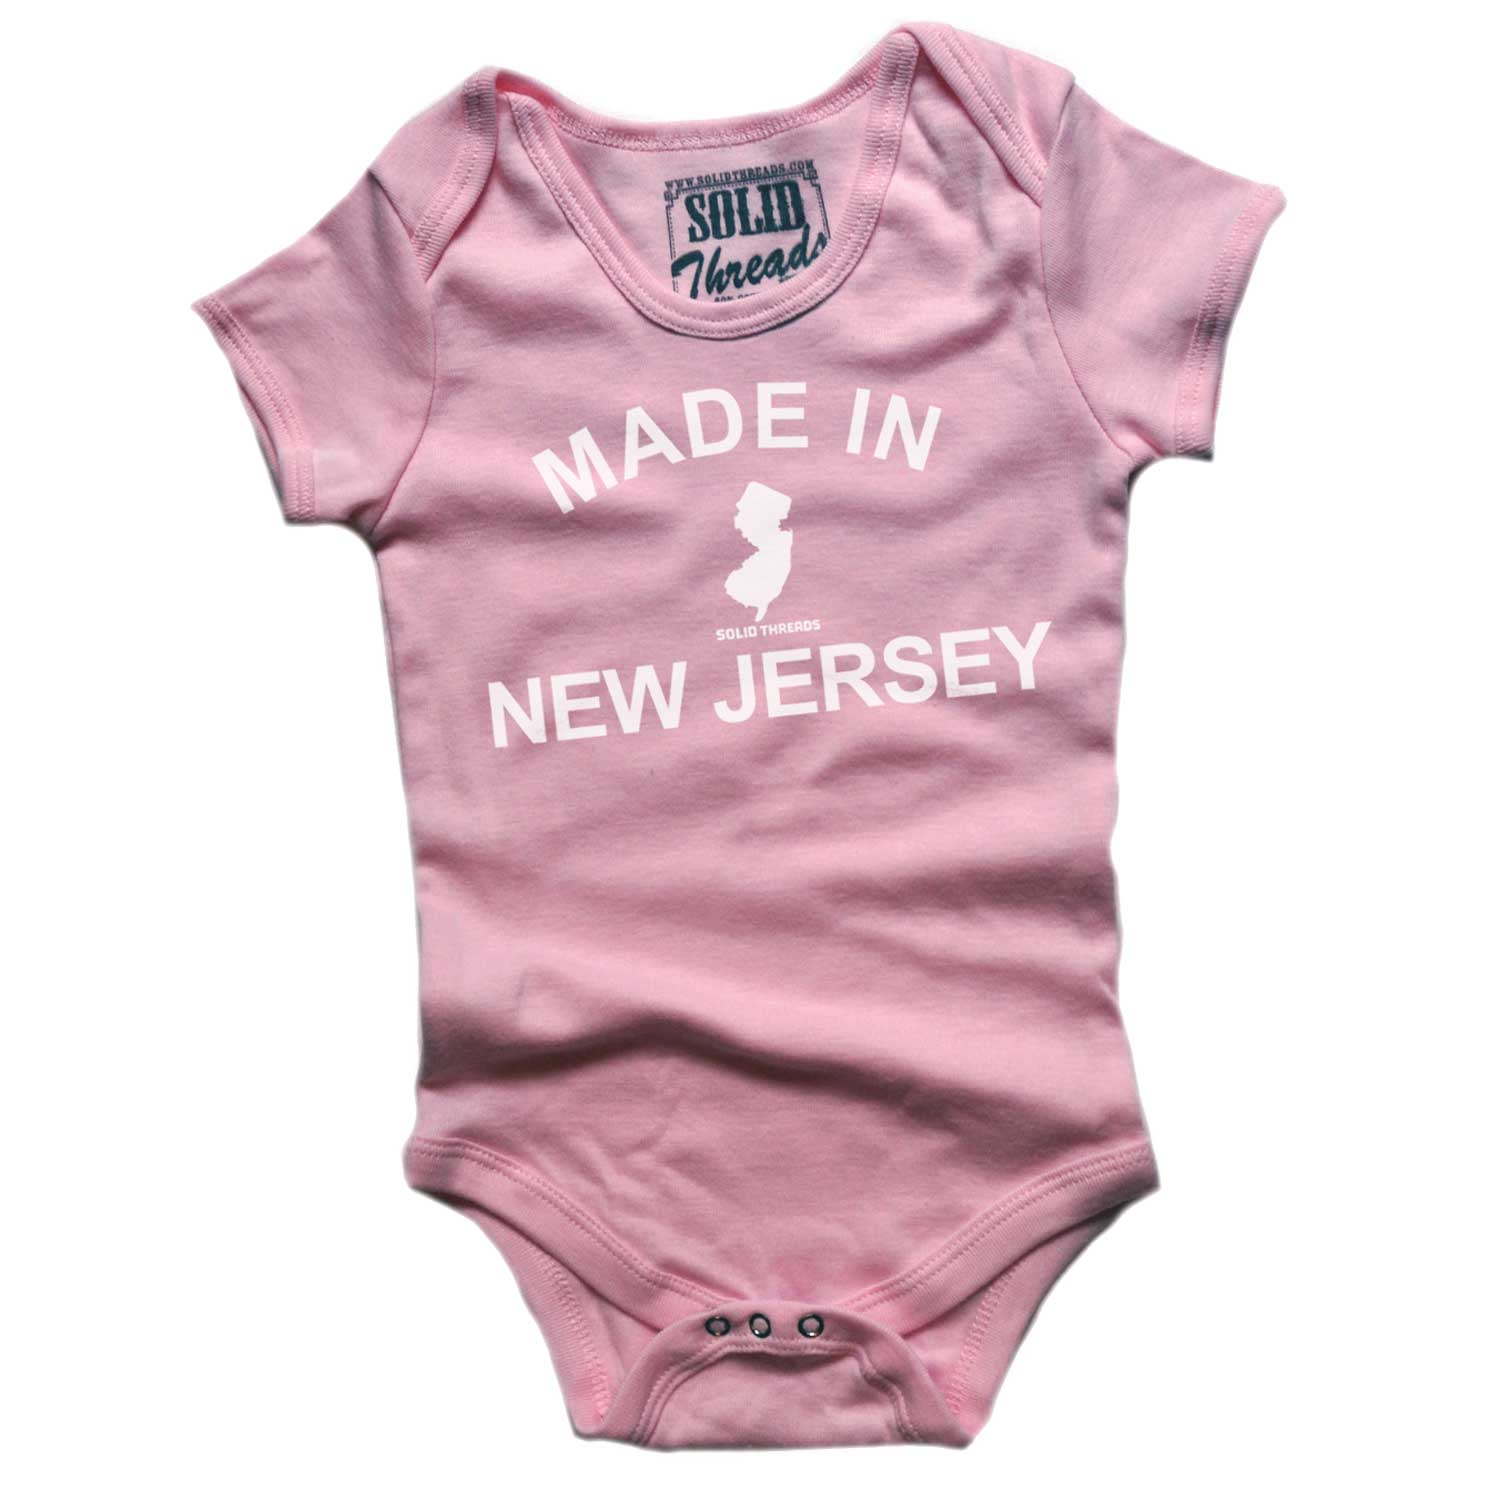 Baby Made In New Jersey One Piece Romper